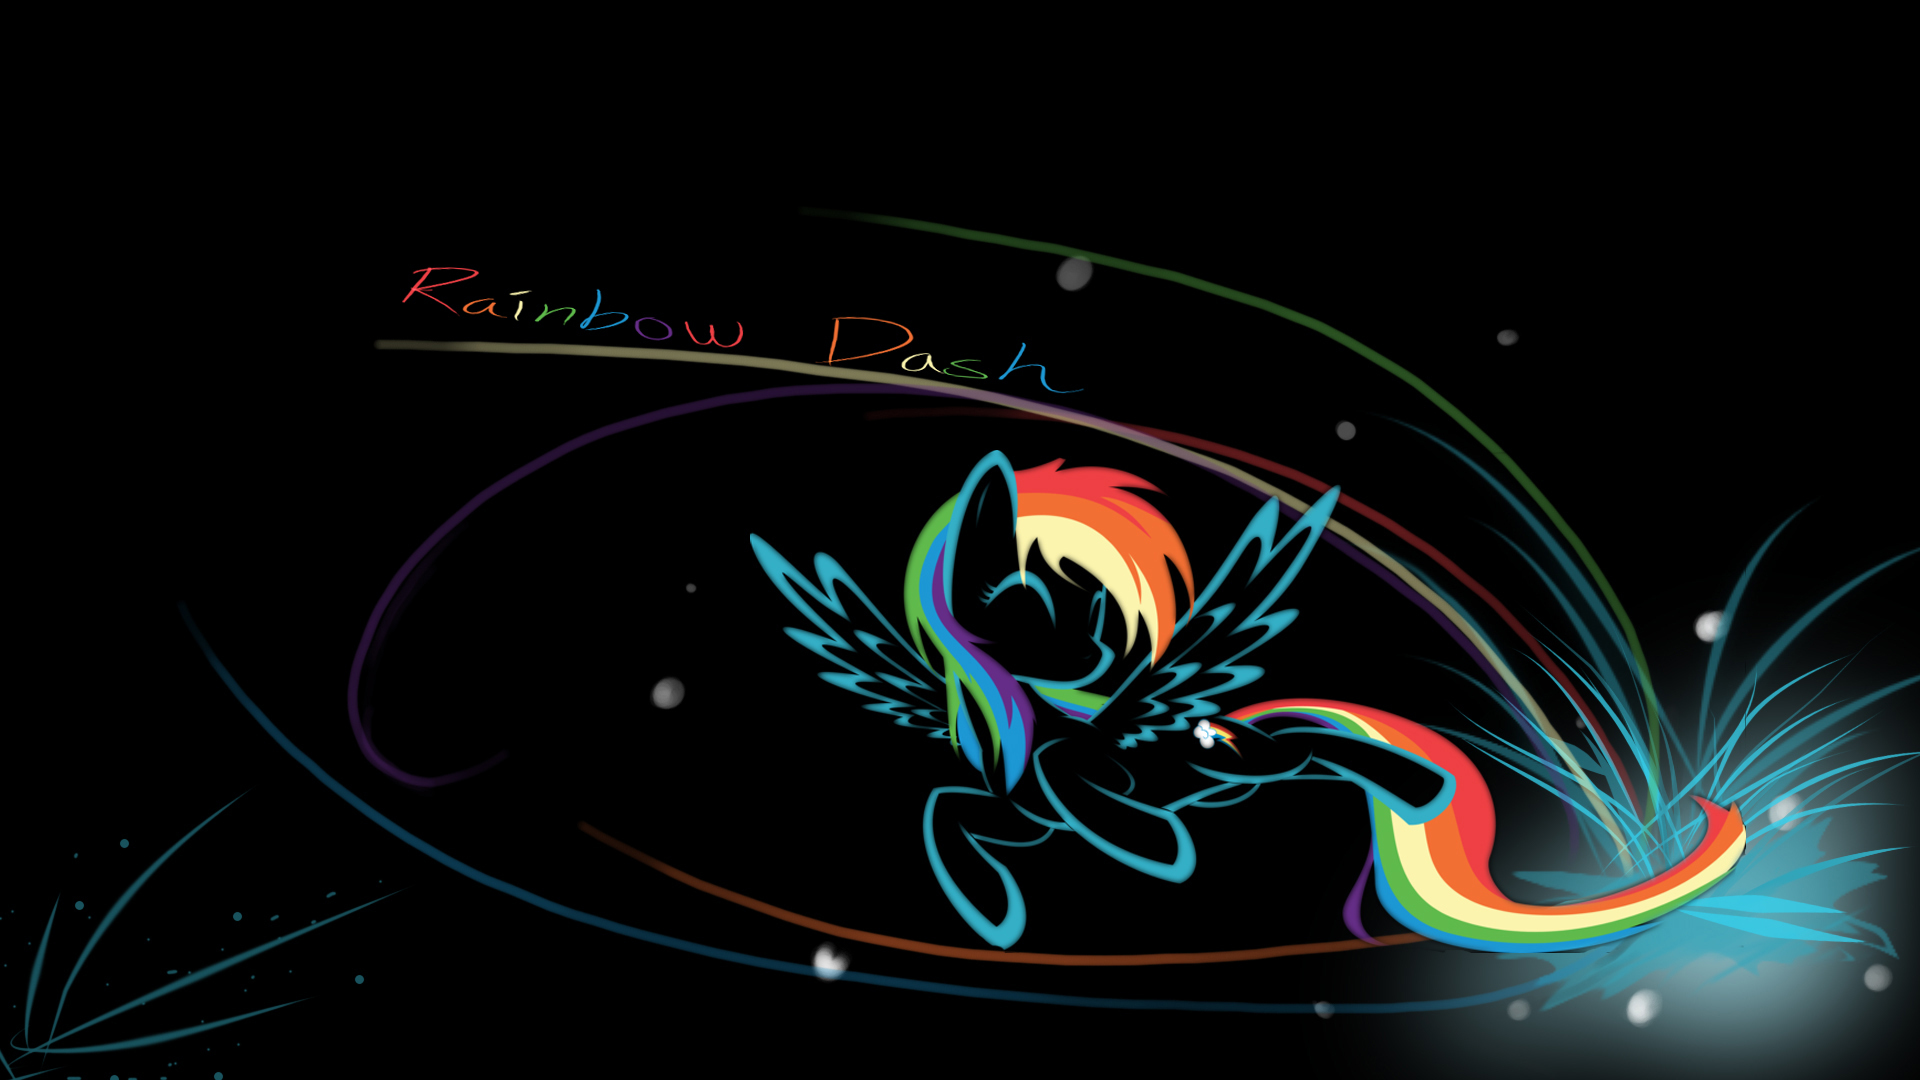 Image Detail For Colorful Ipad Wallpaper Hd 1024x1024: My Little Pony Wallpaper IPad